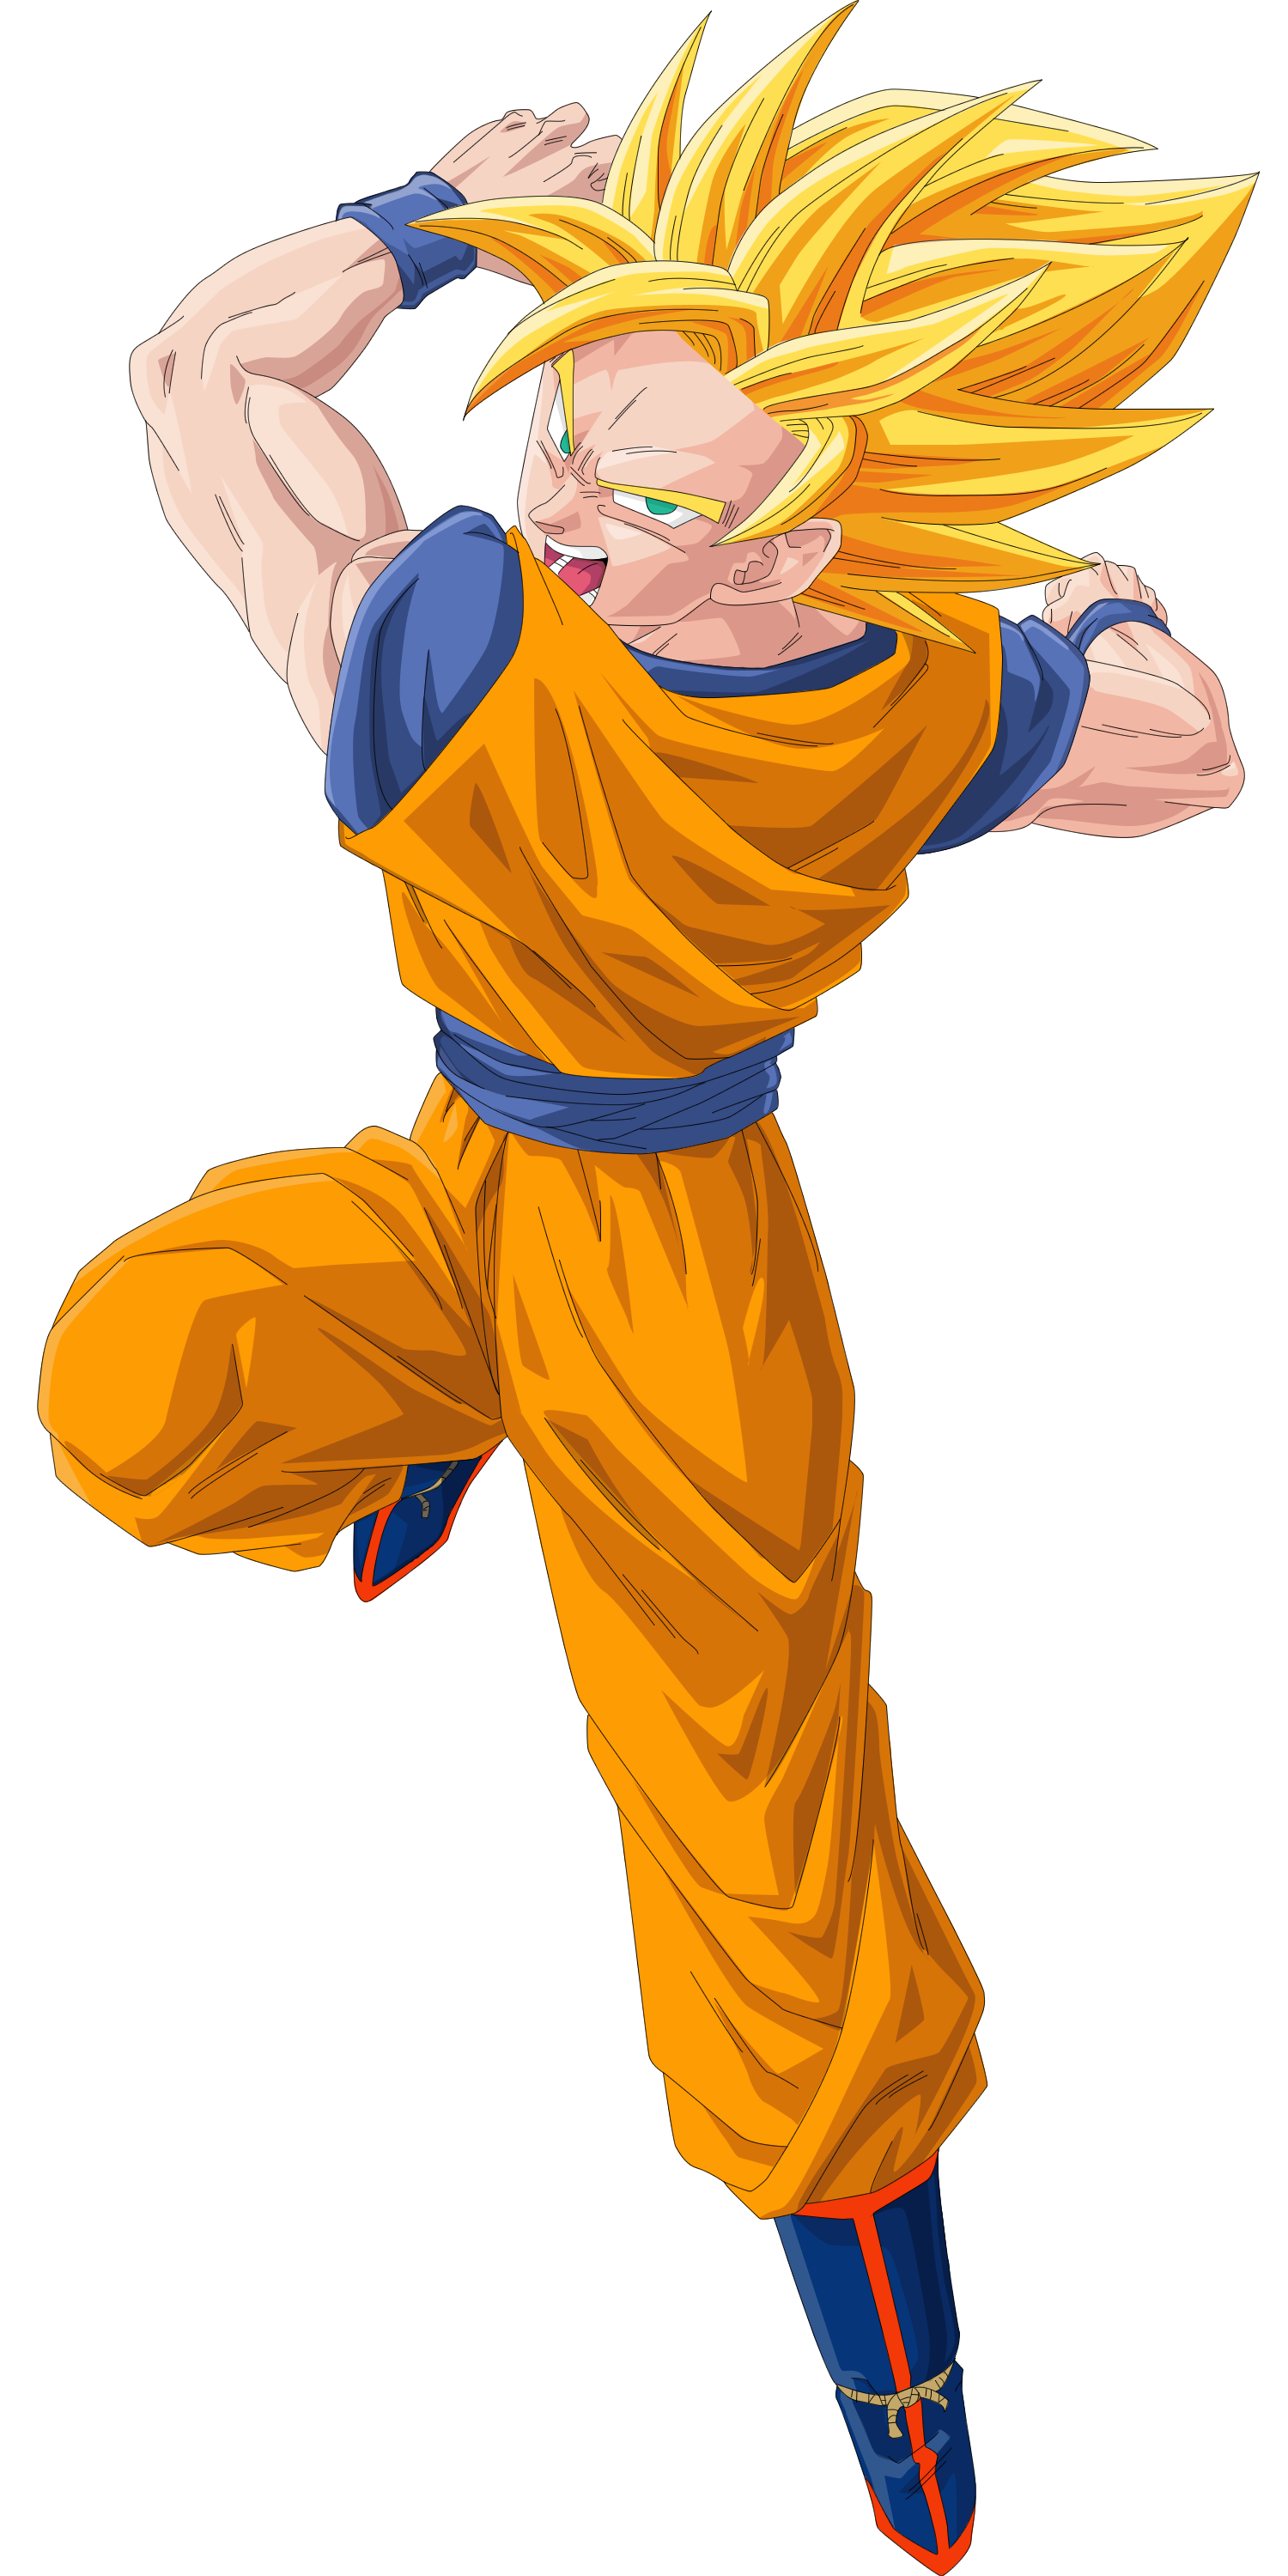 Son Goku Vector Render/Extraction PNG by TattyDesigns on ...